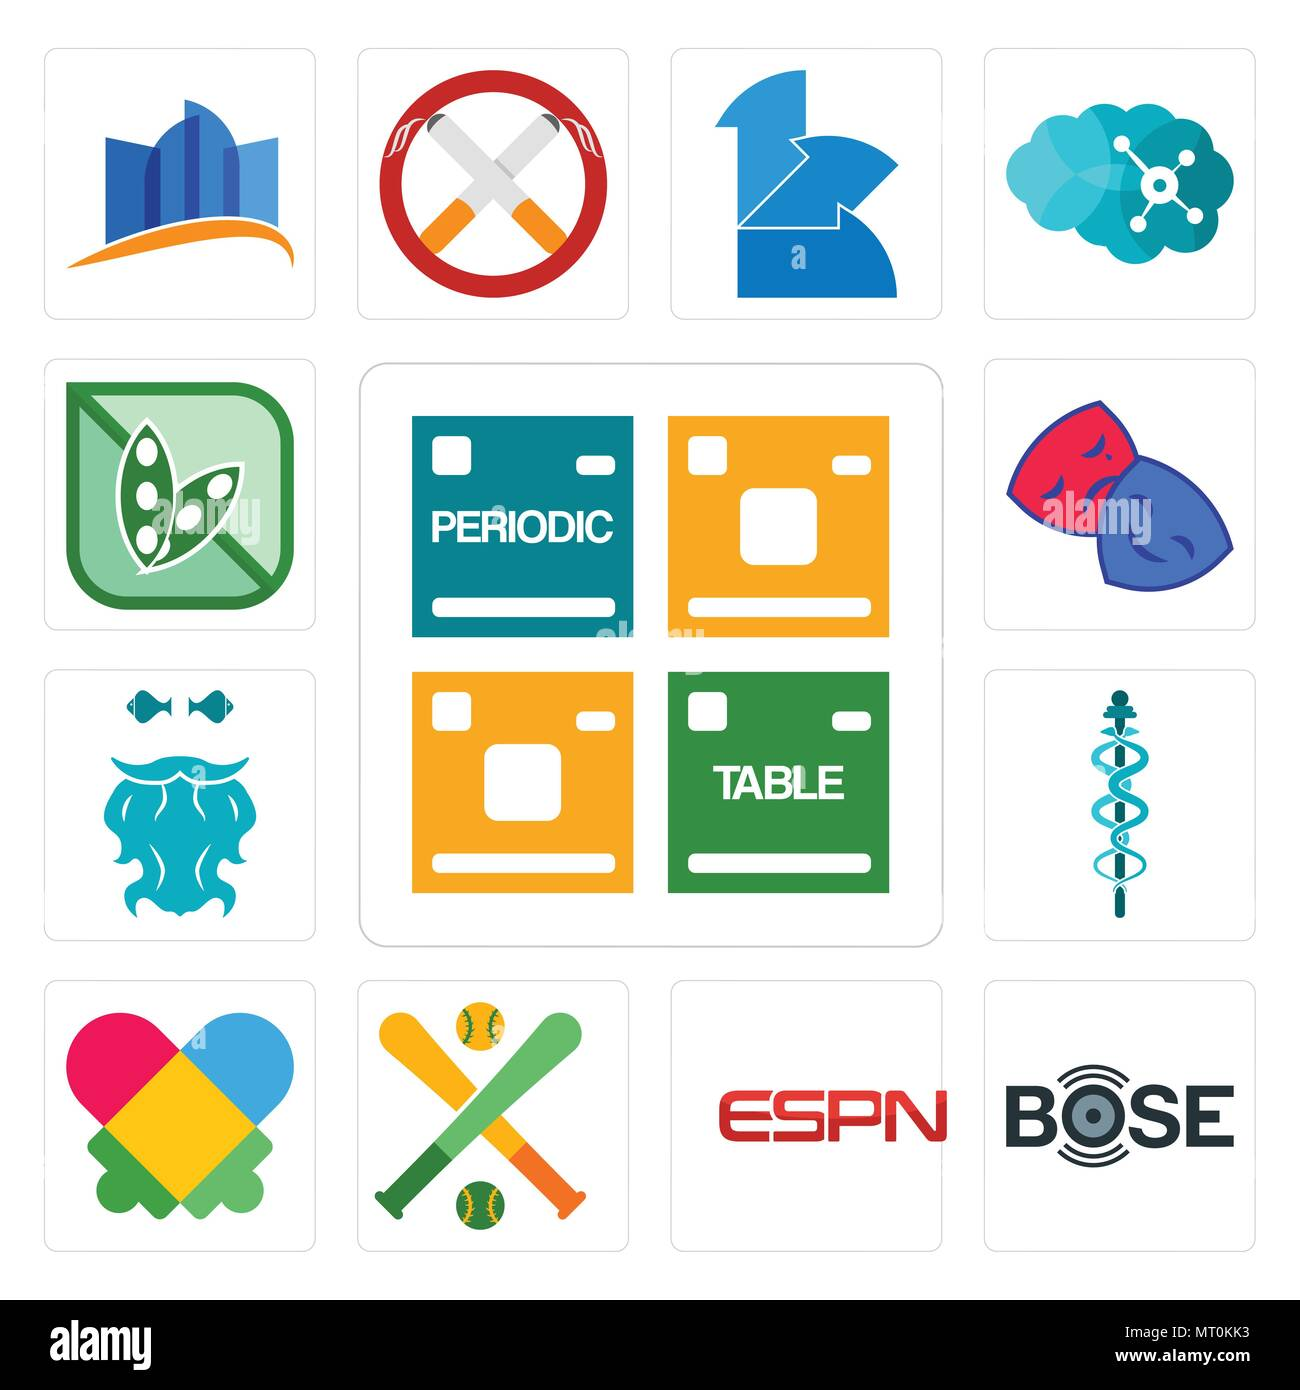 Set of 13 simple editable icons such as periodic table bose espn set of 13 simple editable icons such as periodic table bose espn fantasy baseball autism mbbs bearded fisherman drama club soy free can be use urtaz Gallery